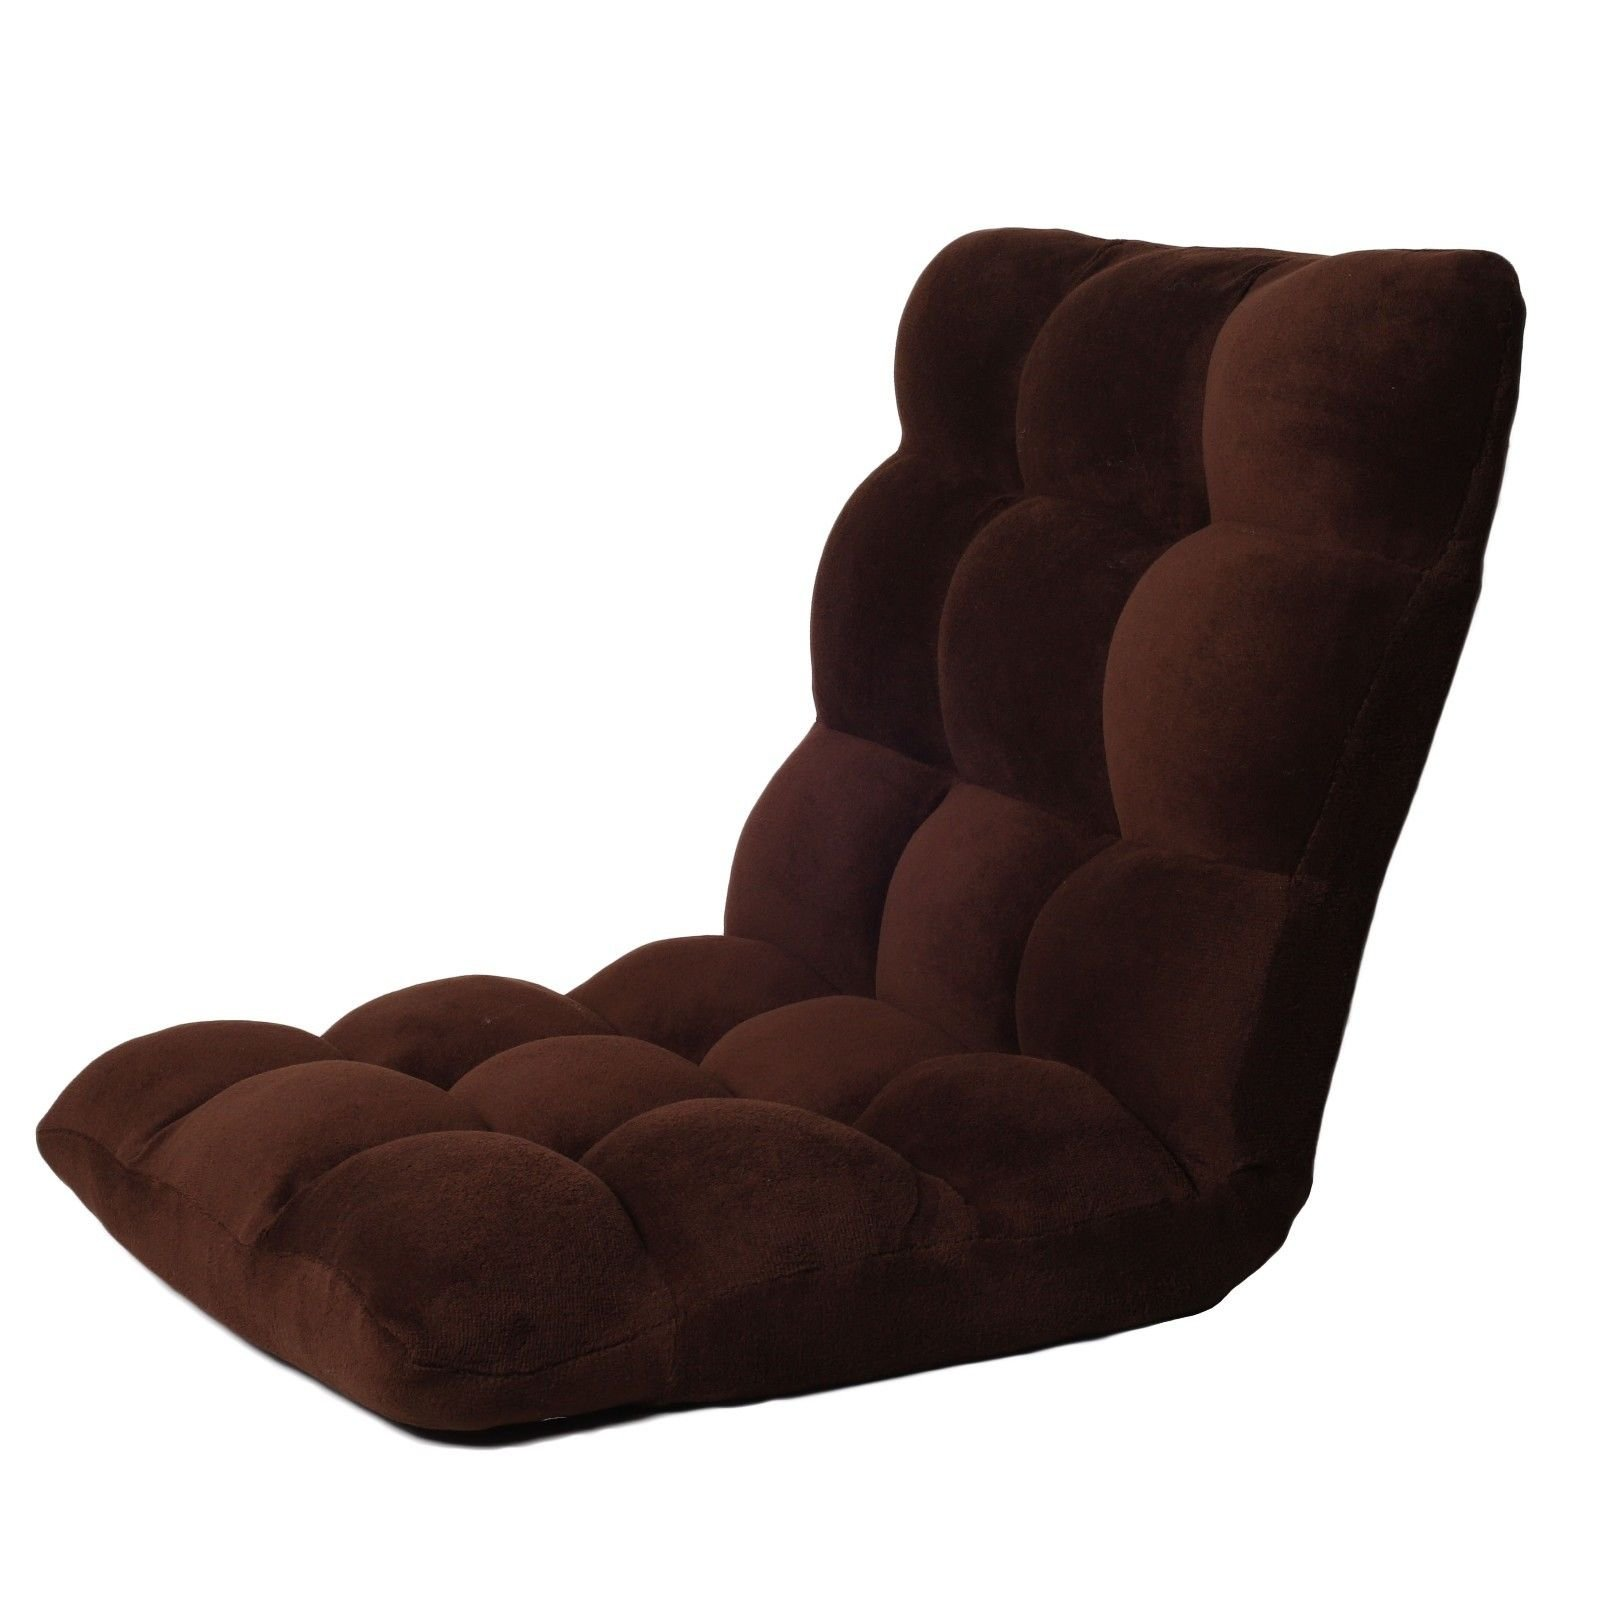 Folding Sofa Chair Floor Gaming Home Adjustable Bed.